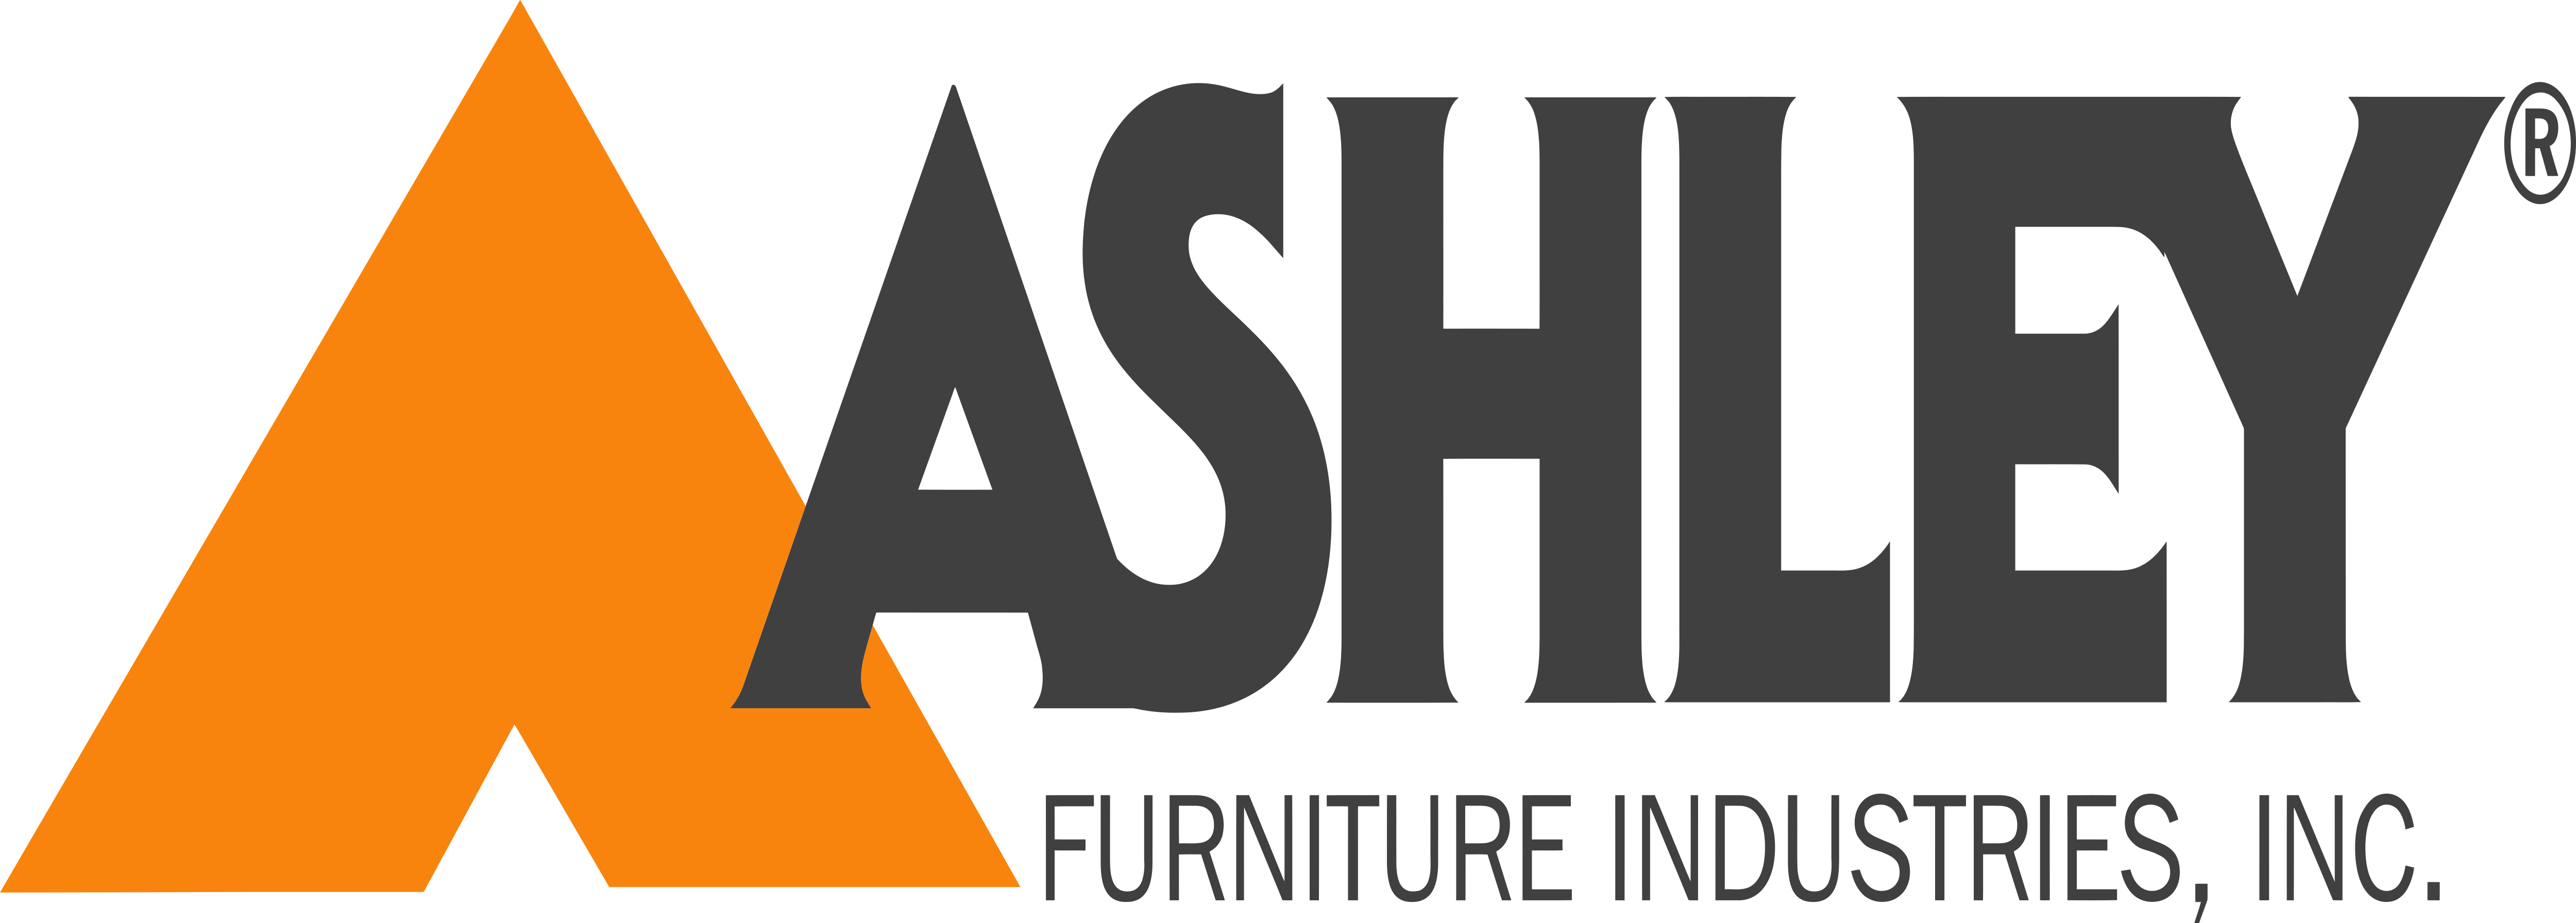 Ashley Furniture.